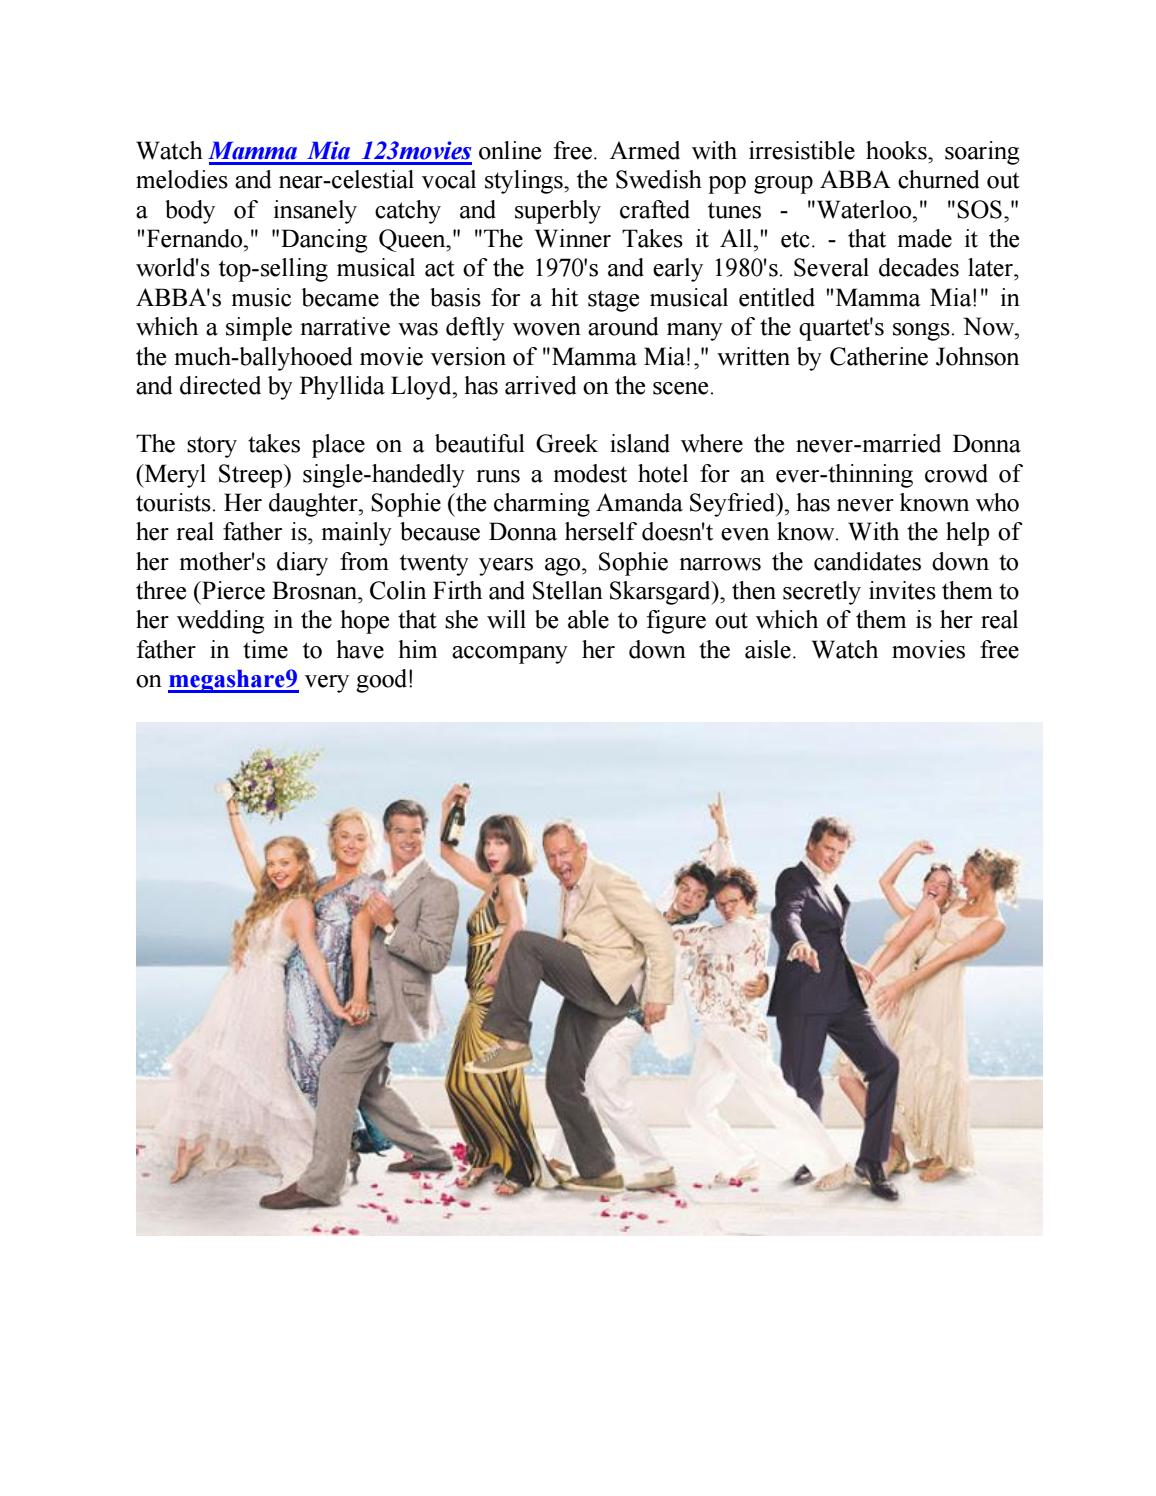 Watch Mamma Mia Free Online